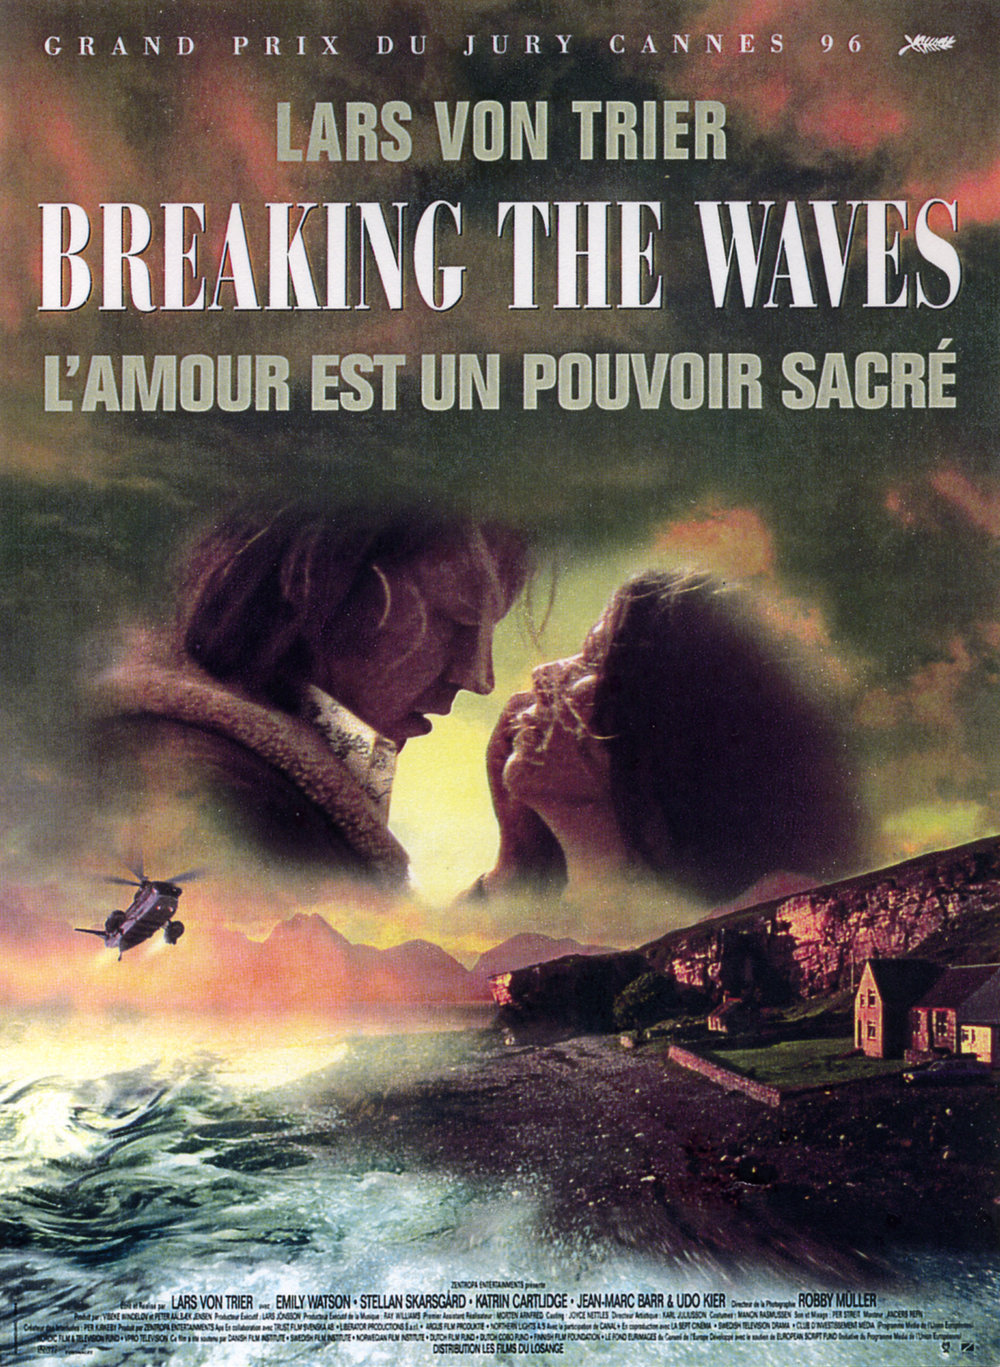 Breaking the waves  de  Lars Von Trier